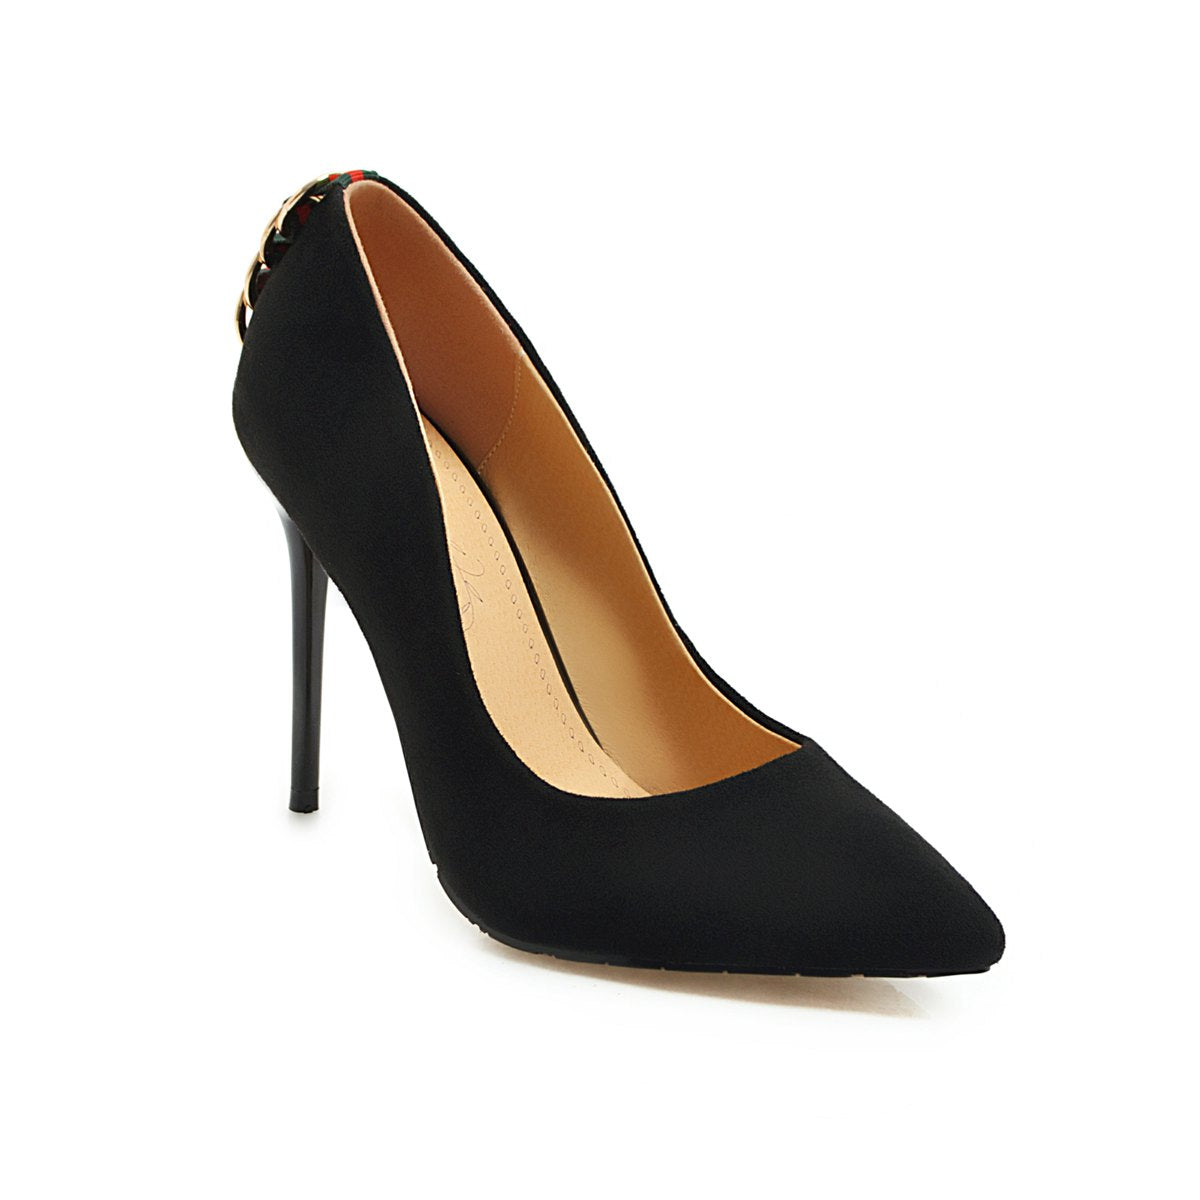 New Fashion Suede Back-Ring Women Pumps-shoes-Trendy-JayBoutique-#2-US=3.0 EU=31-Trendy-JayBoutique